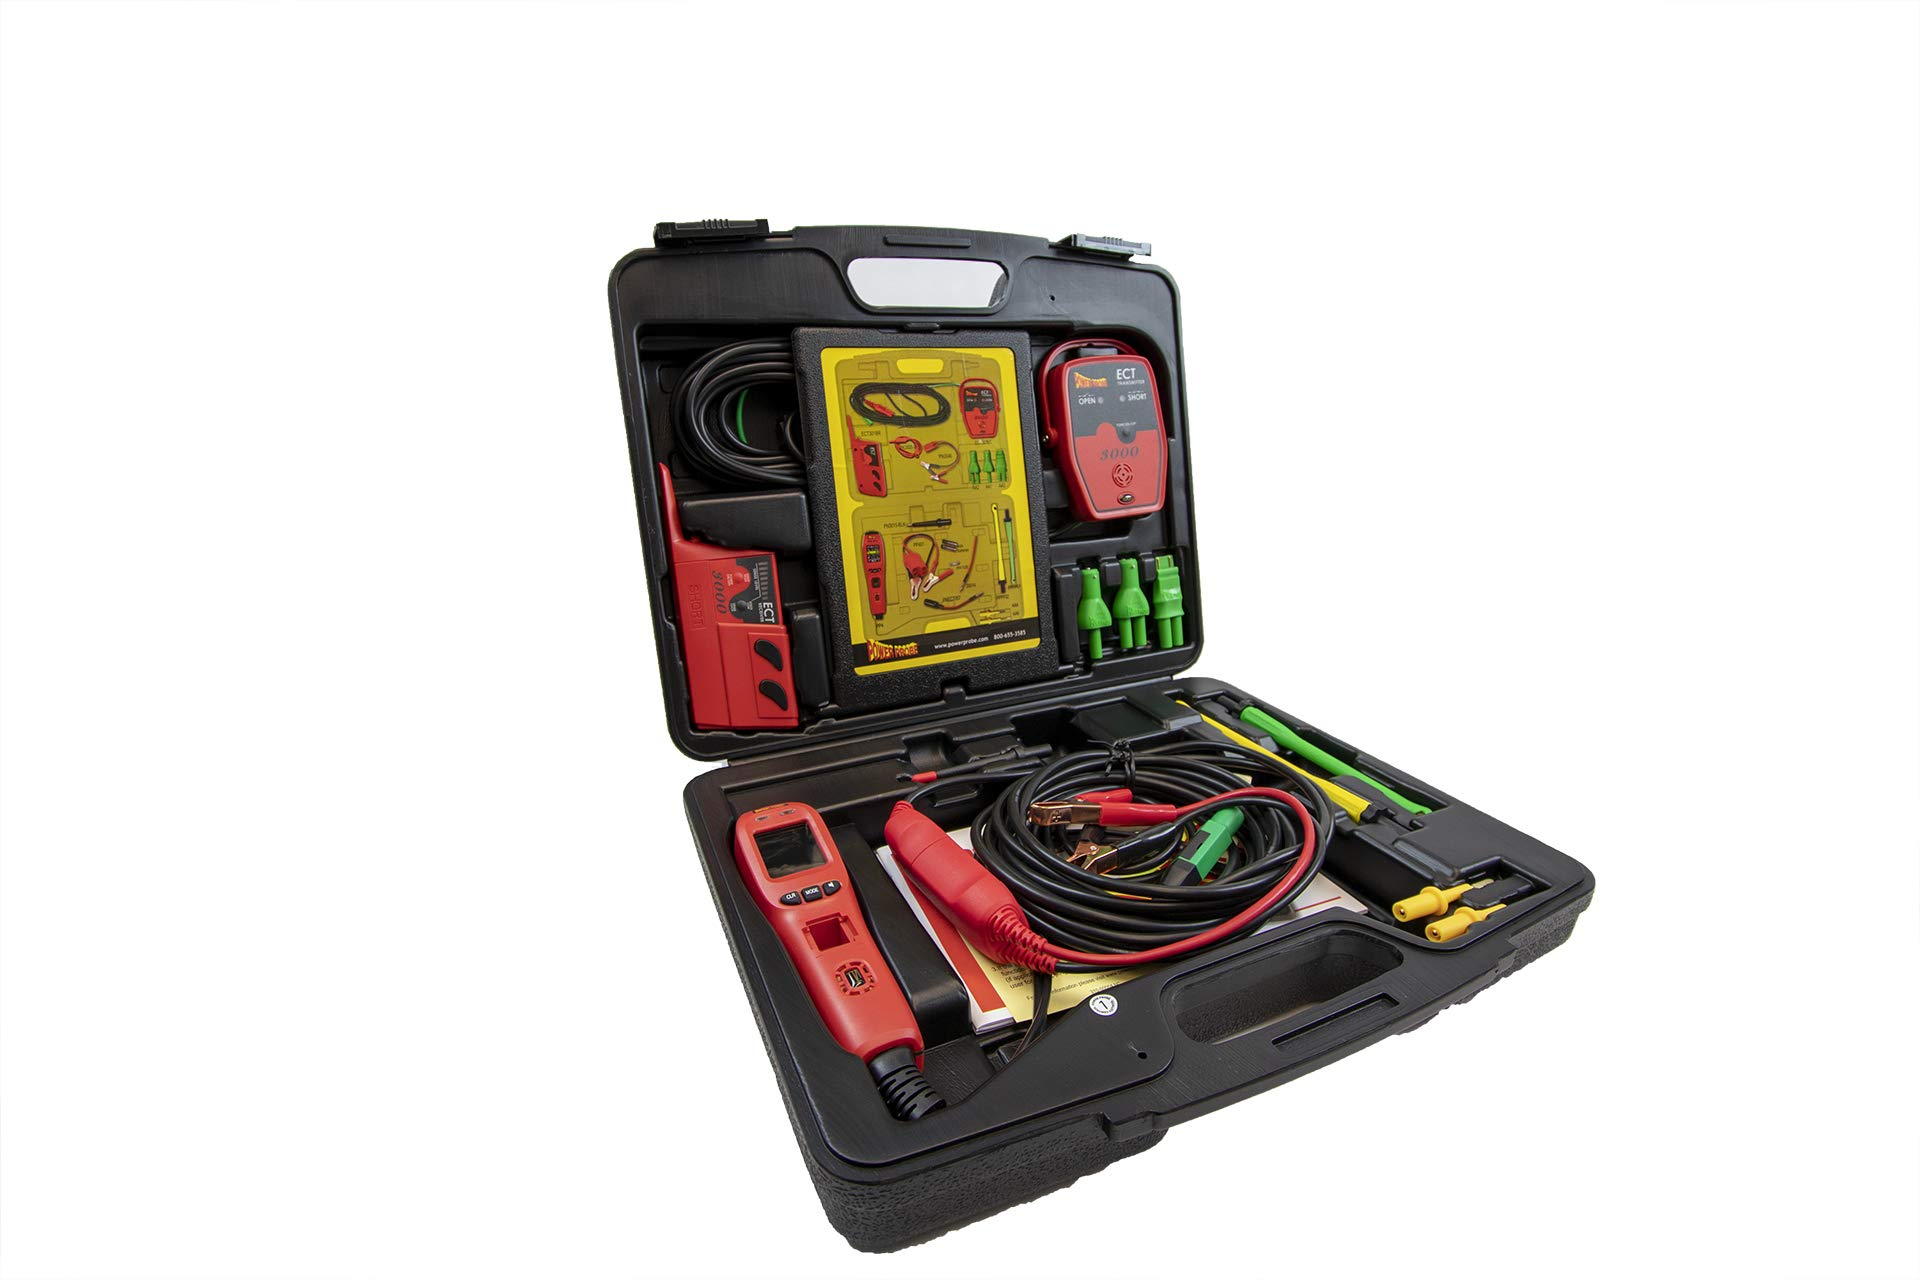 Diesel Laptops Power Probe 3 (III) Master Combo Kit with 12-Months of Truck Fault Codes by Diesel Laptops (Image #5)